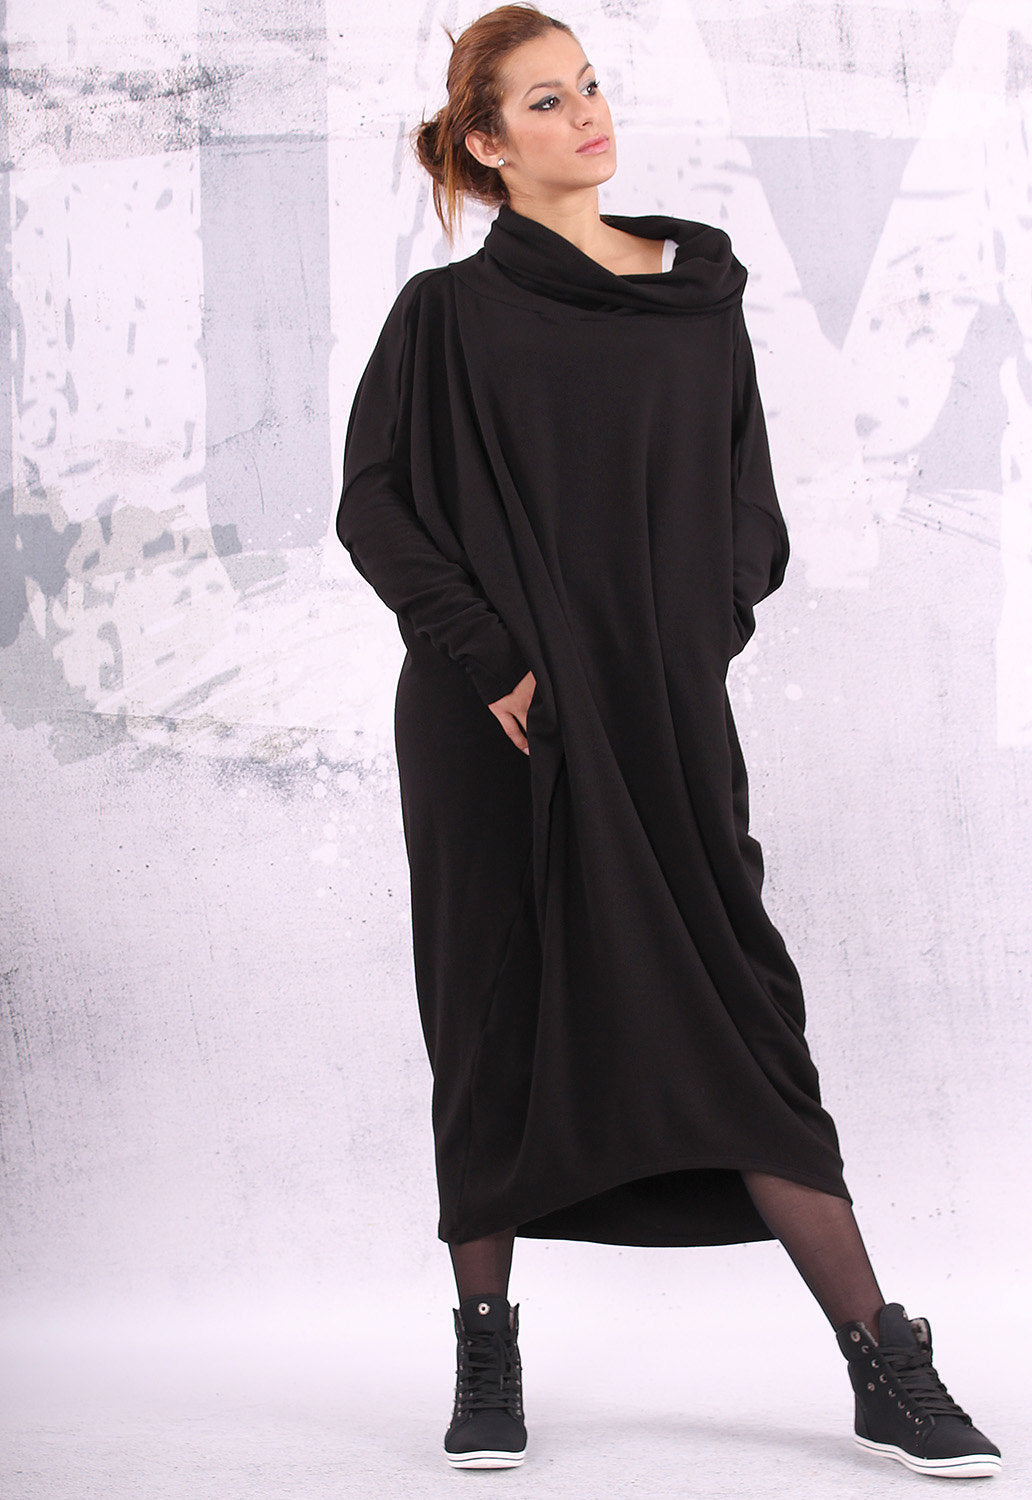 Black extravagant asymmetrical tunic dress, plus size tunic, oversize dress, long sleeved dress,  - UM-QC001-QC